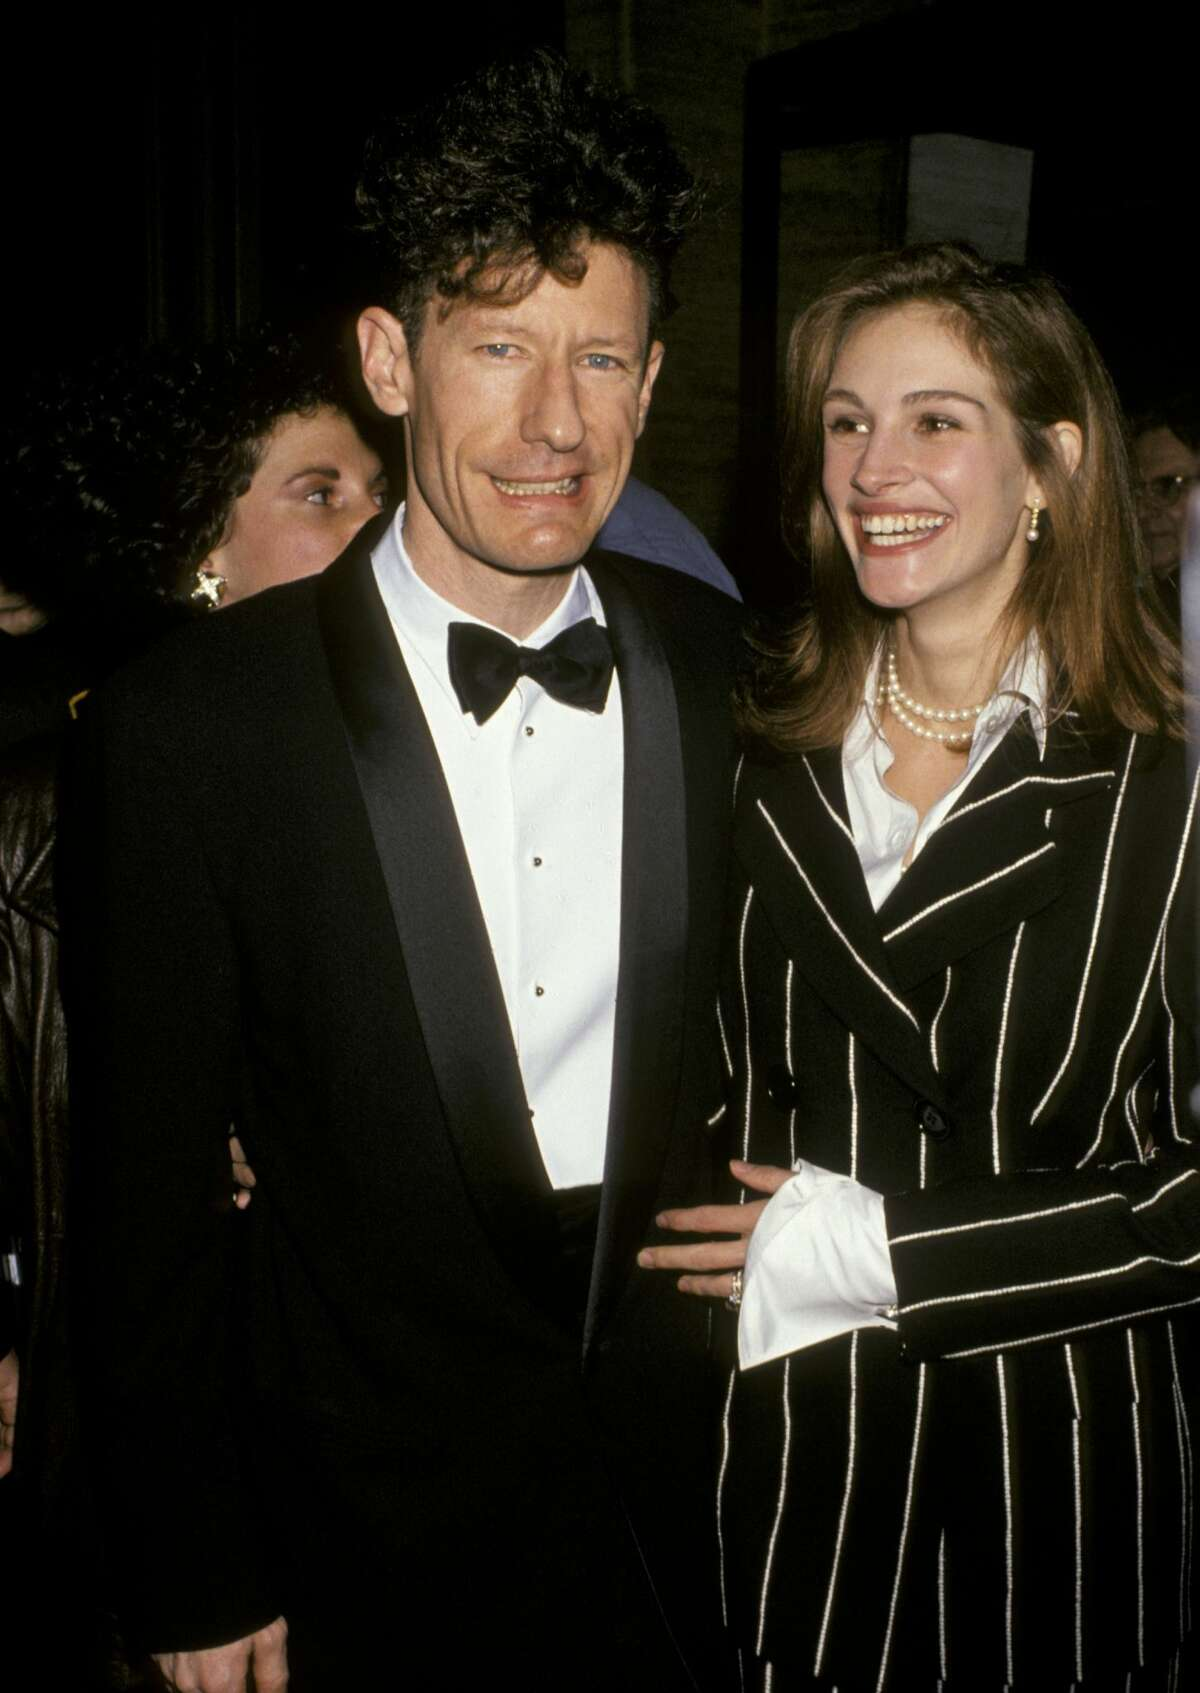 Lyle Lovett and Julia Roberts (Photo by Jim Smeal/WireImage)